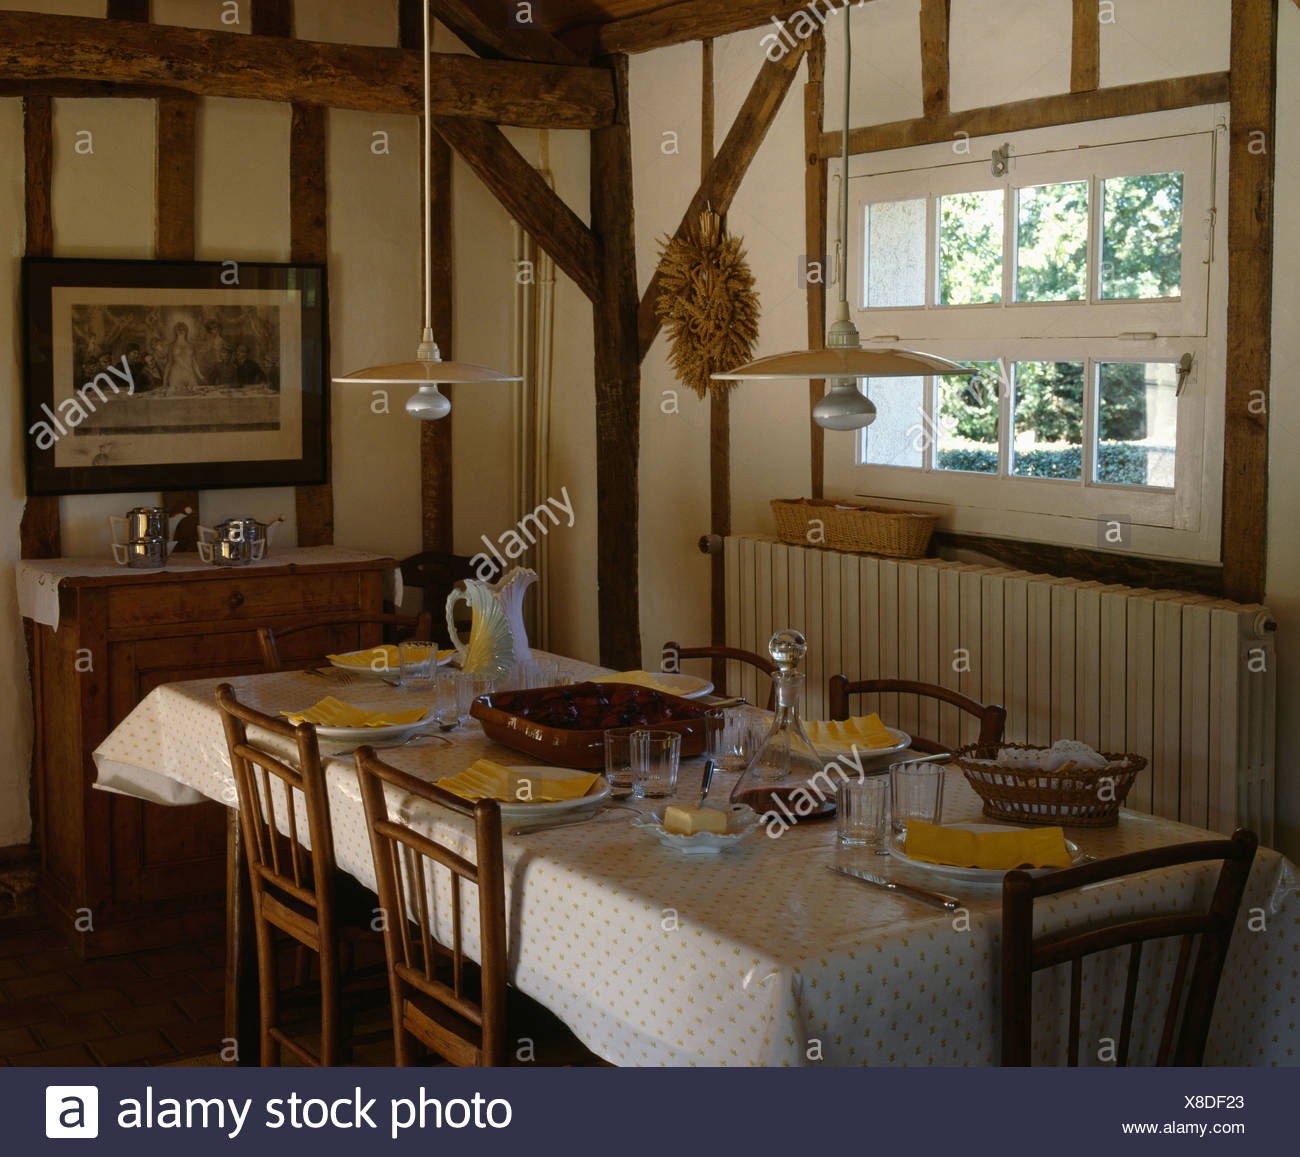 Double Pendant Lights Over Table In Country Diningroom With Beamed Walls Stock Photo Alamy